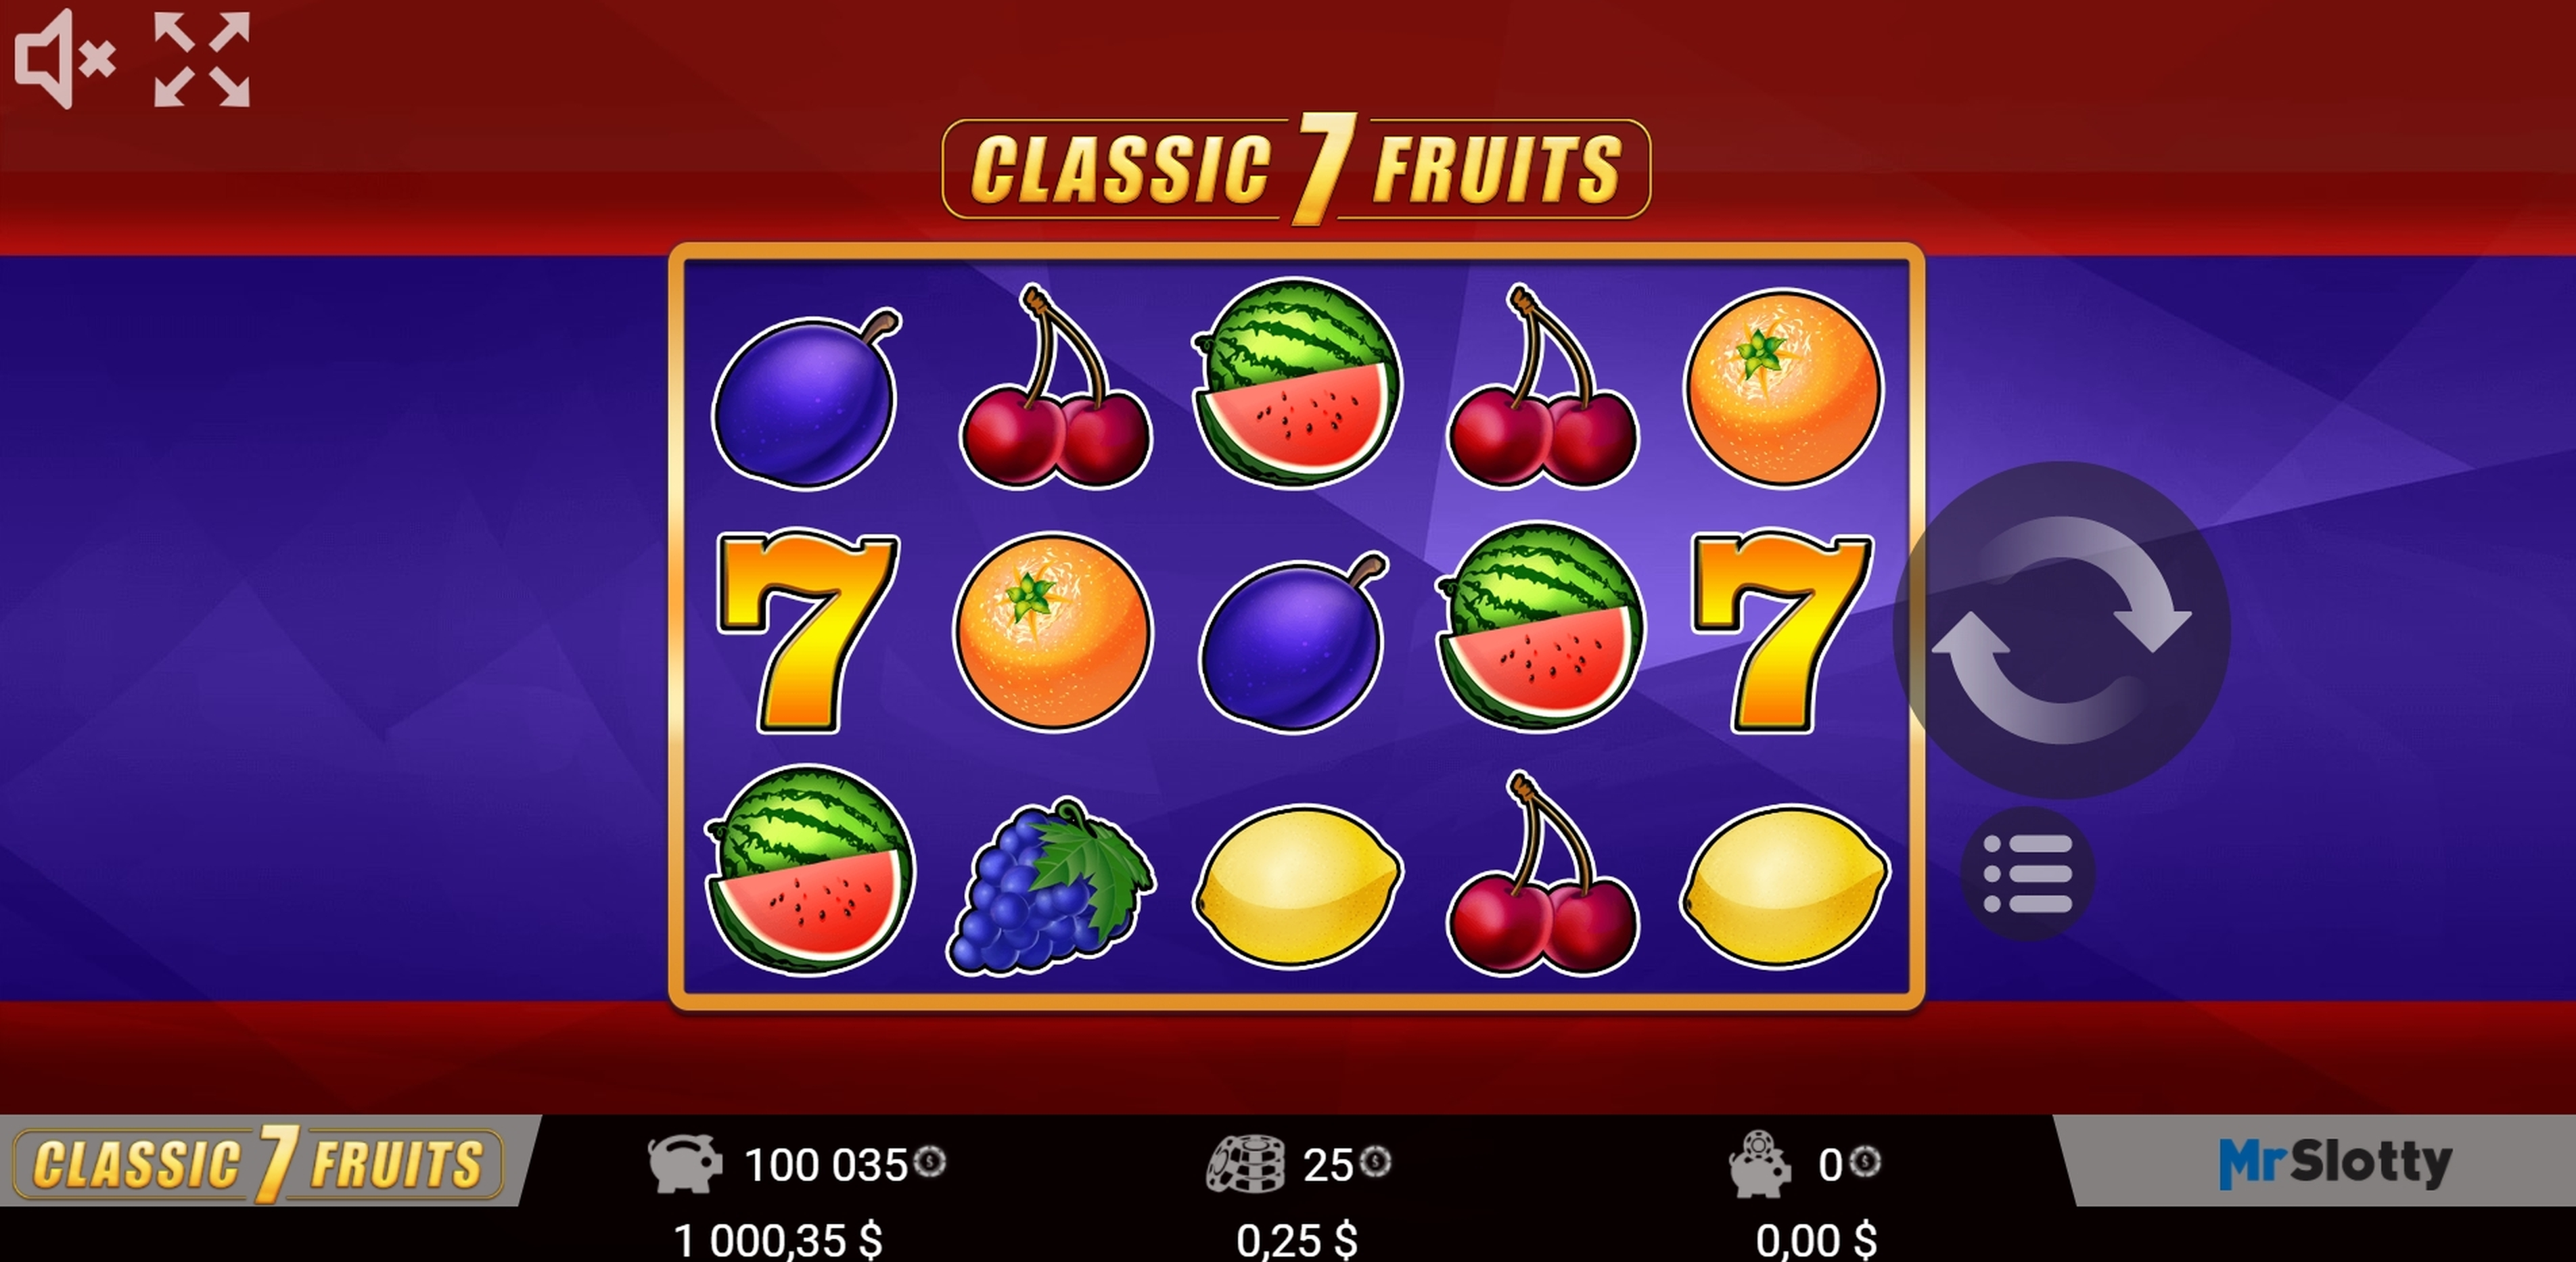 Reels in Classic 7 Fruits Slot Game by Mr Slotty